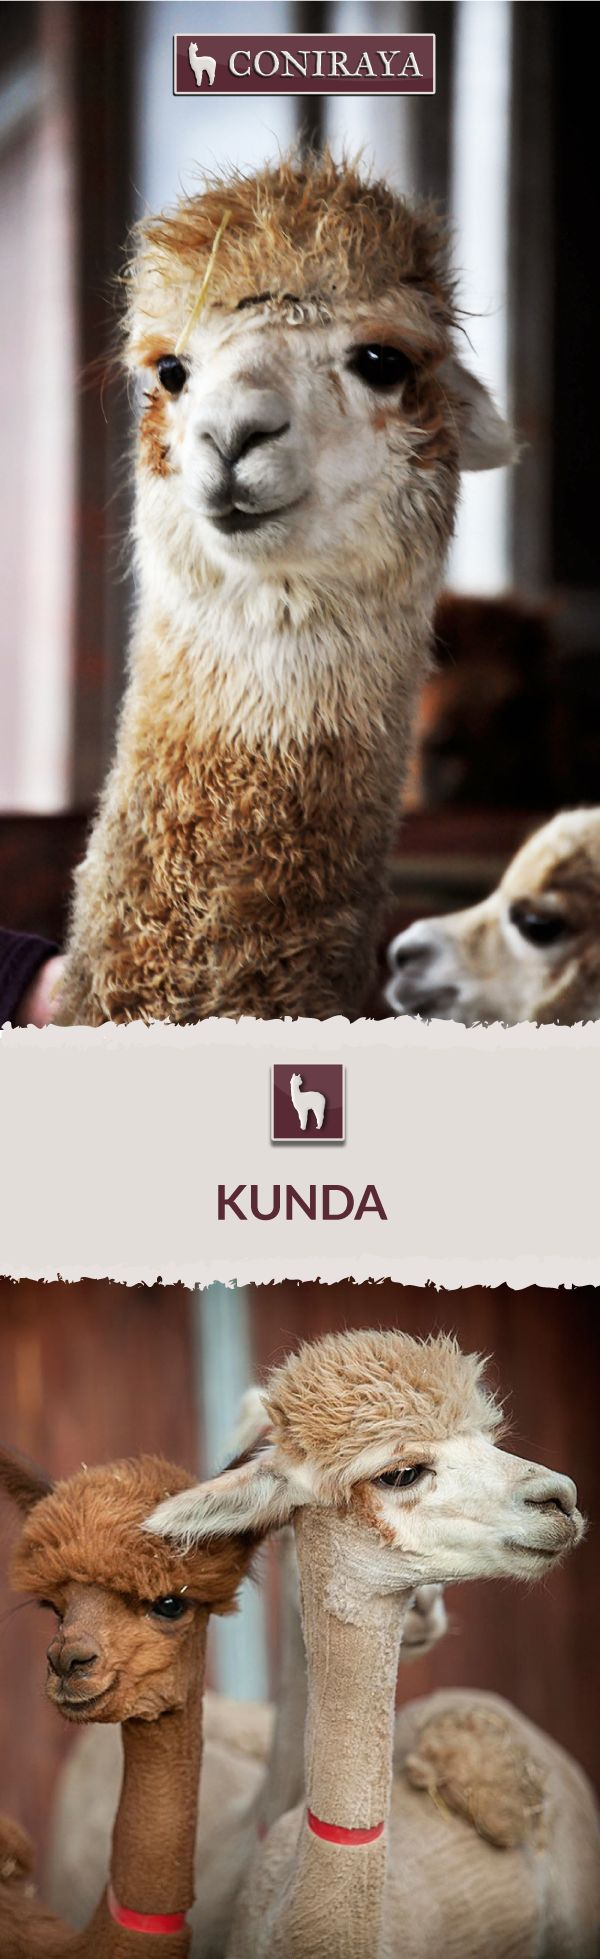 Meet Coniraya - Kunda. This Alpaca was born in 2012 and its fiber is in color: Light Fawn. Check out more details on our site!